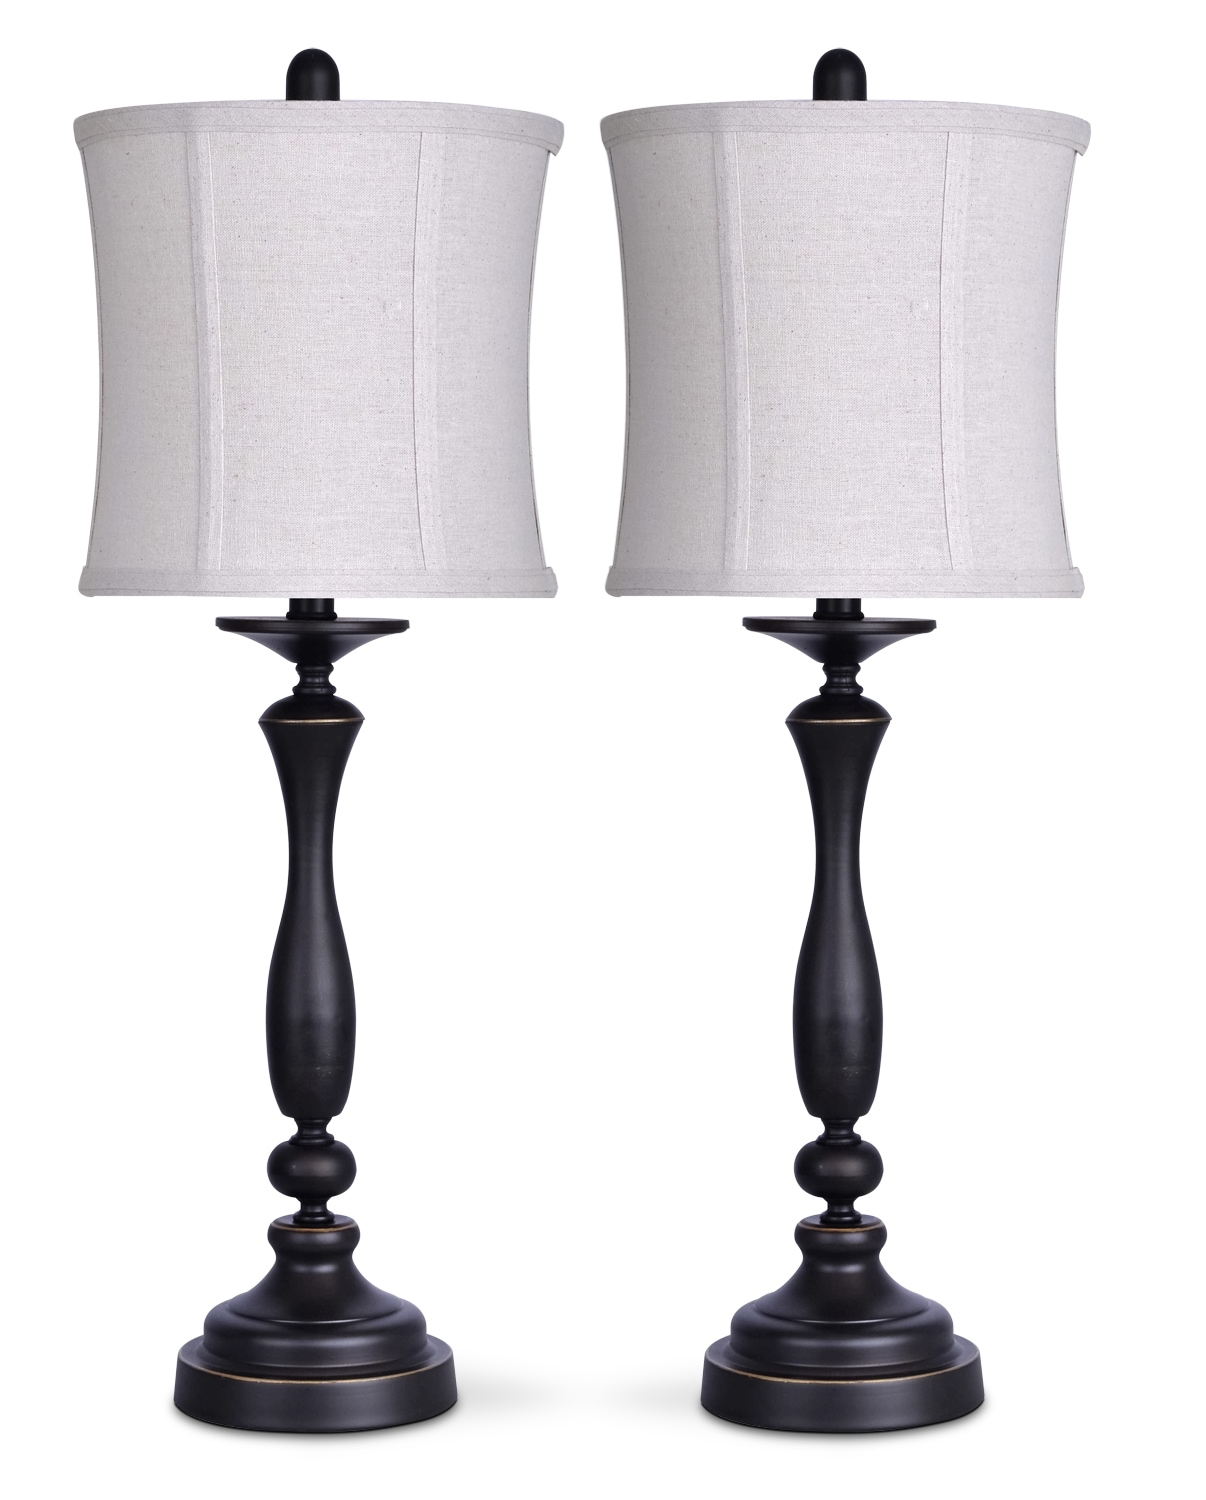 Oil-Rubbed Bronze 2-Piece Table Lamp Set with Linen Shade